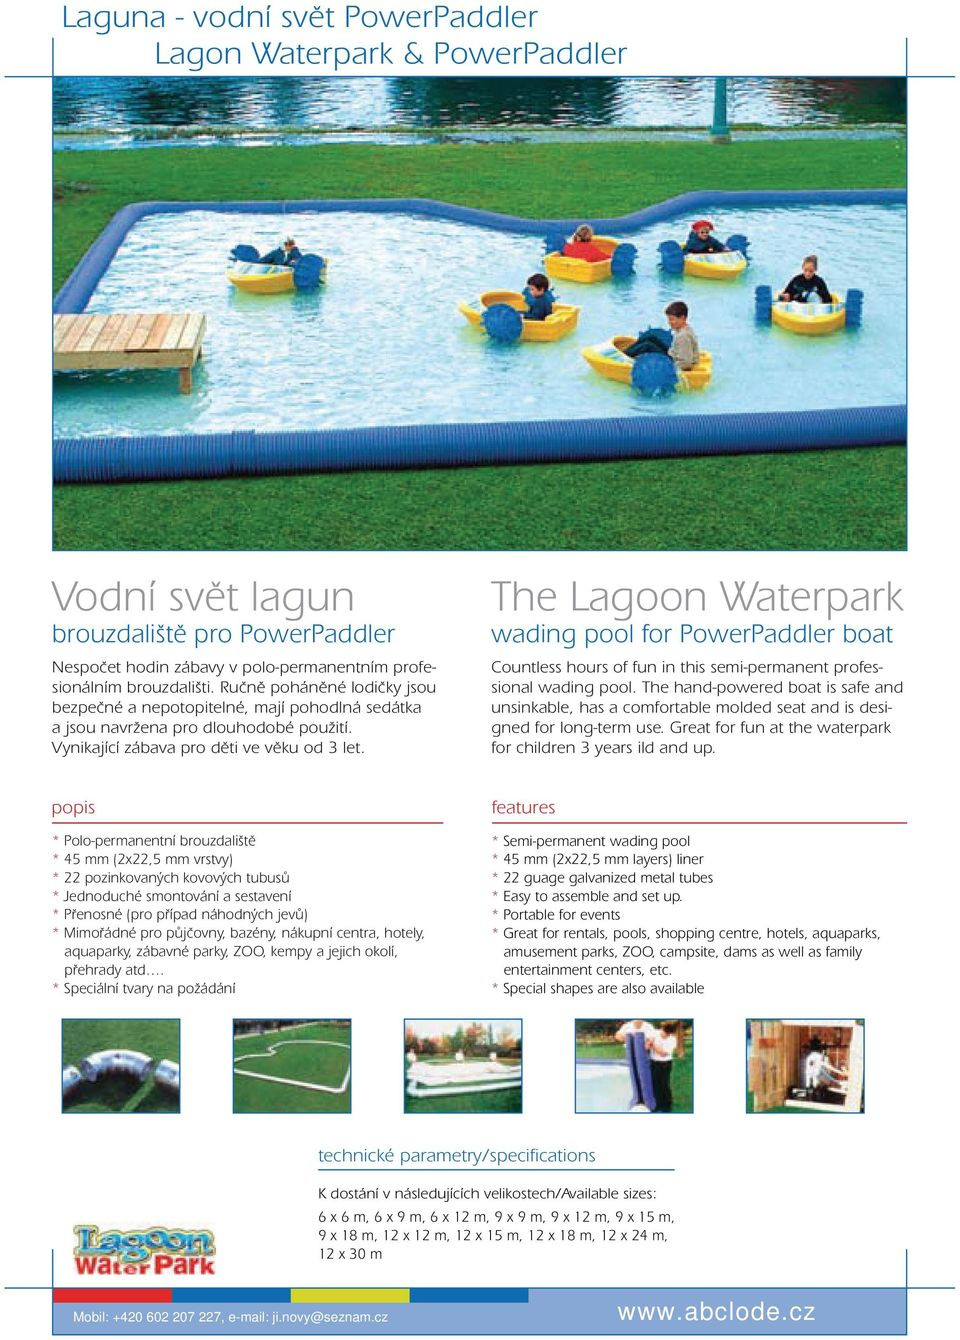 The Lagoon Waterpark wading pool for PowerPaddler boat Countless hours of fun in this semi-permanent professional wading pool.